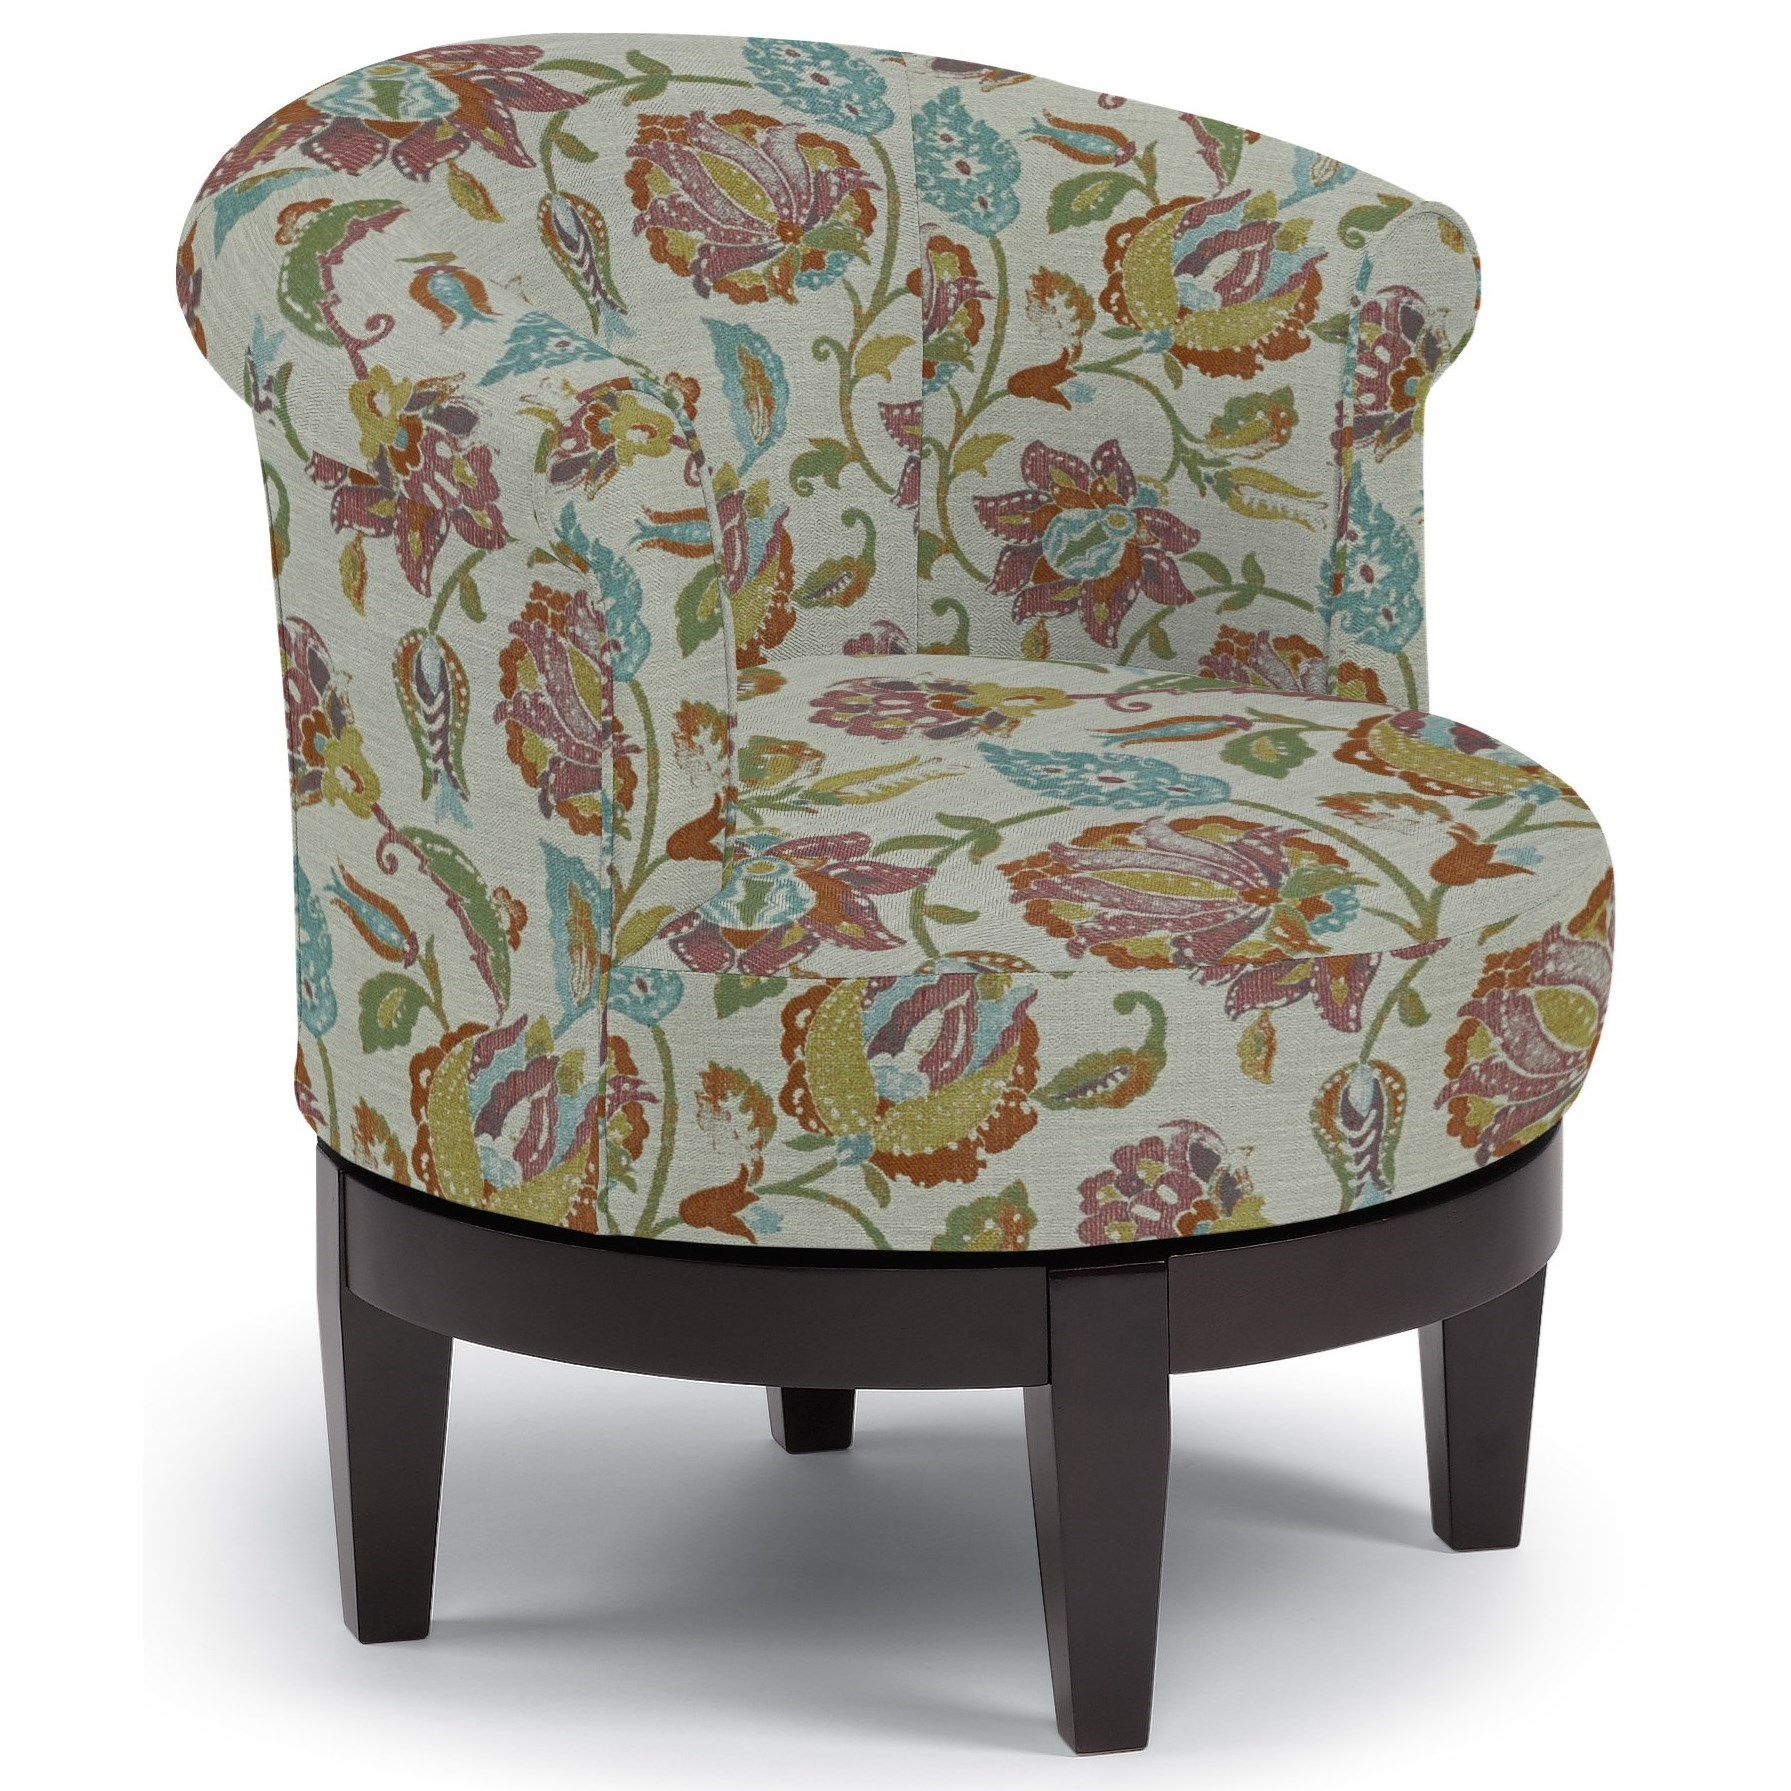 Chairs - Swivel Barrel Attica Swivel Chair by Best Home Furnishings at Fashion Furniture